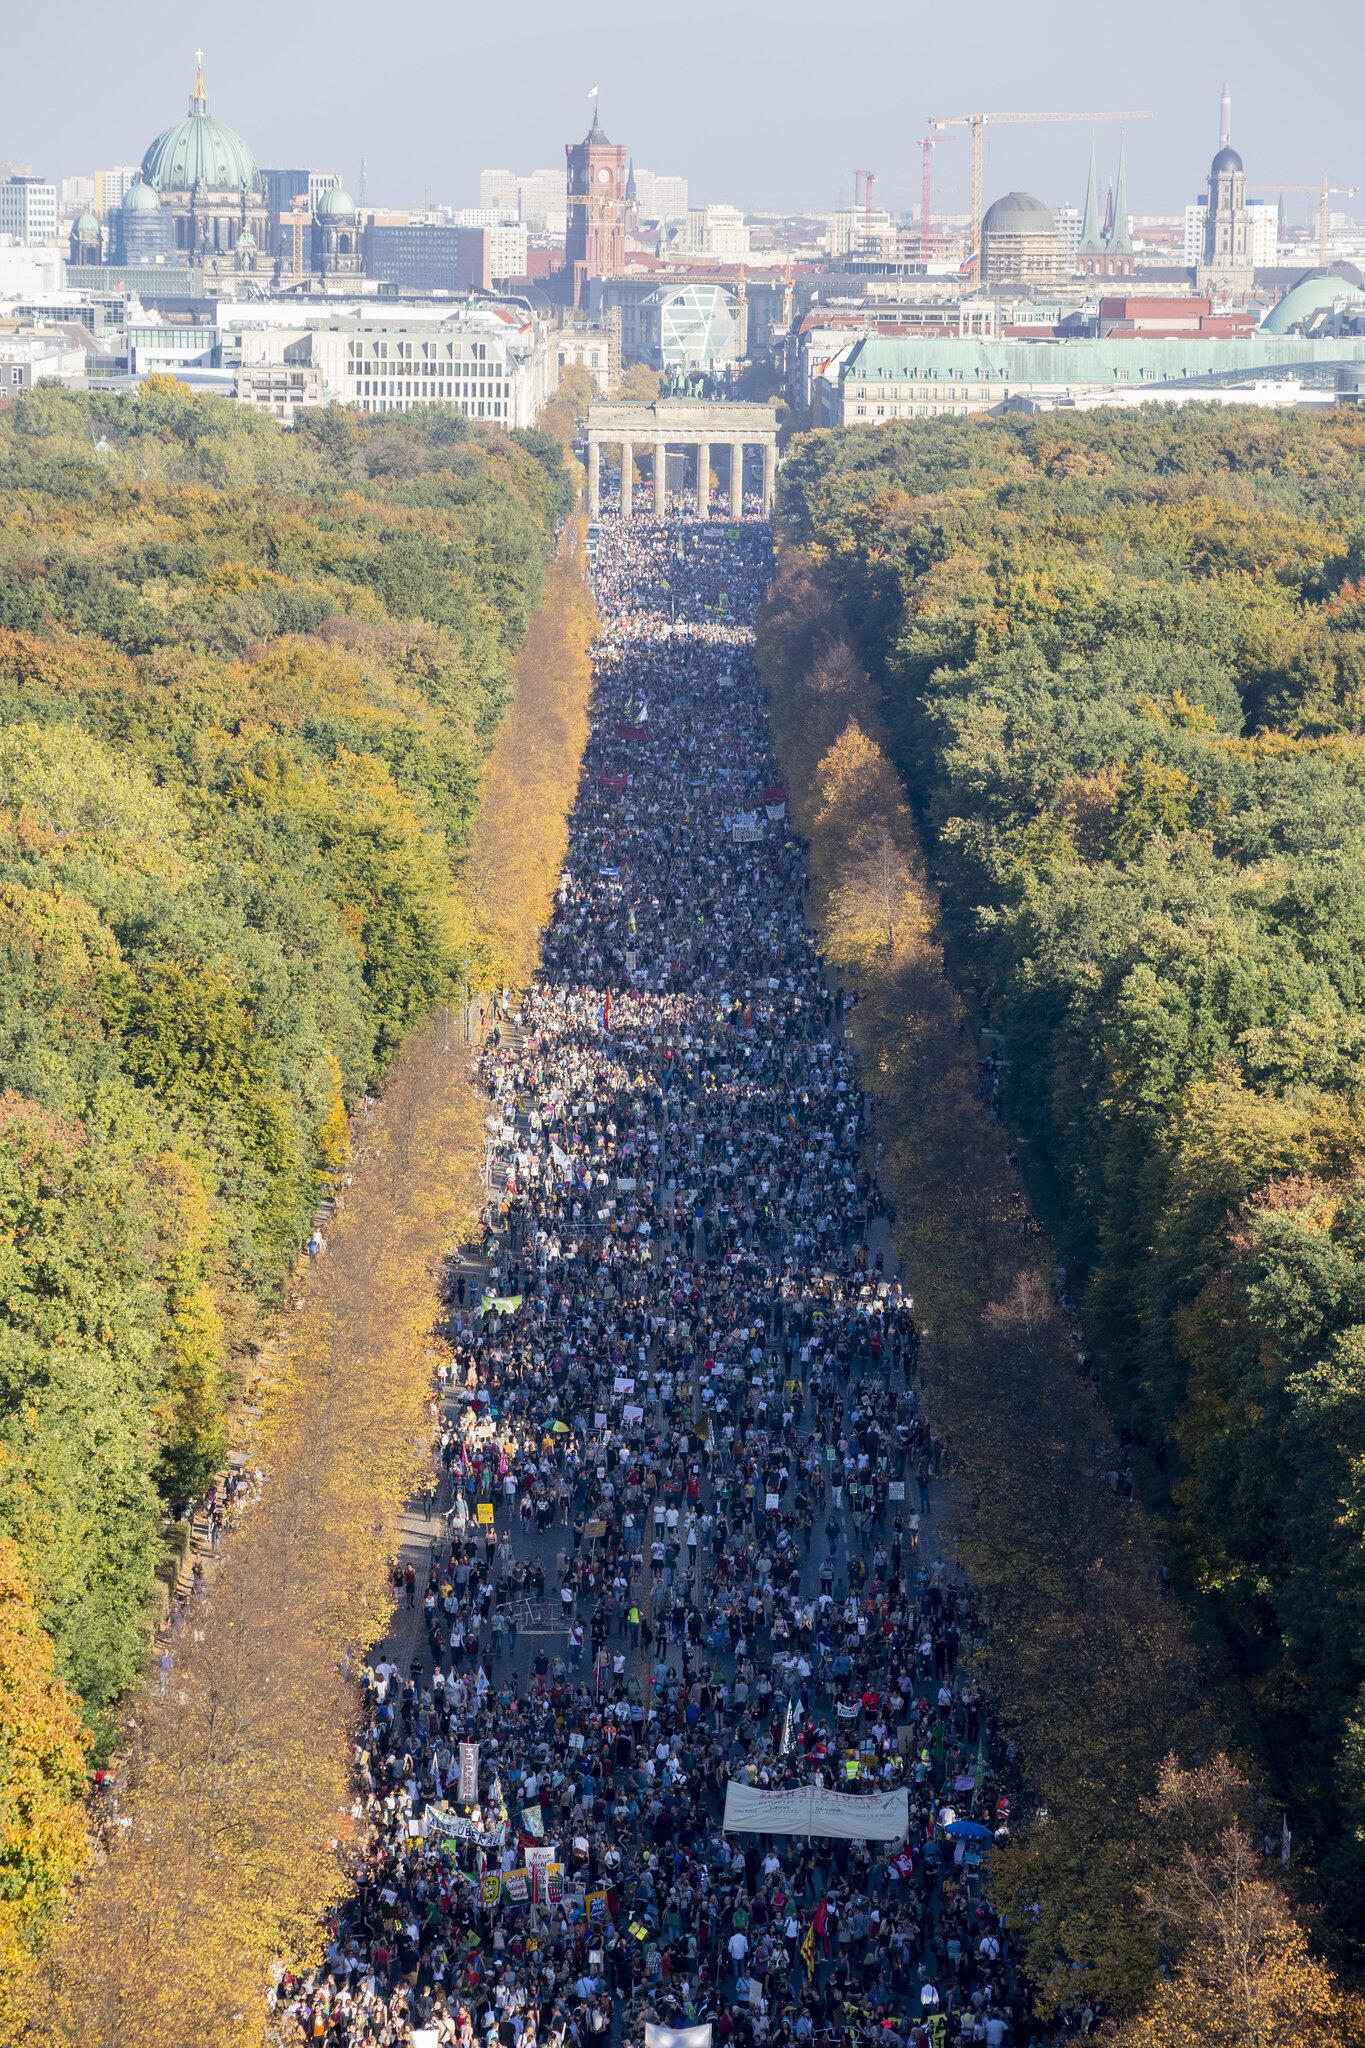 Bild zu Demonstration against racism in Berlin